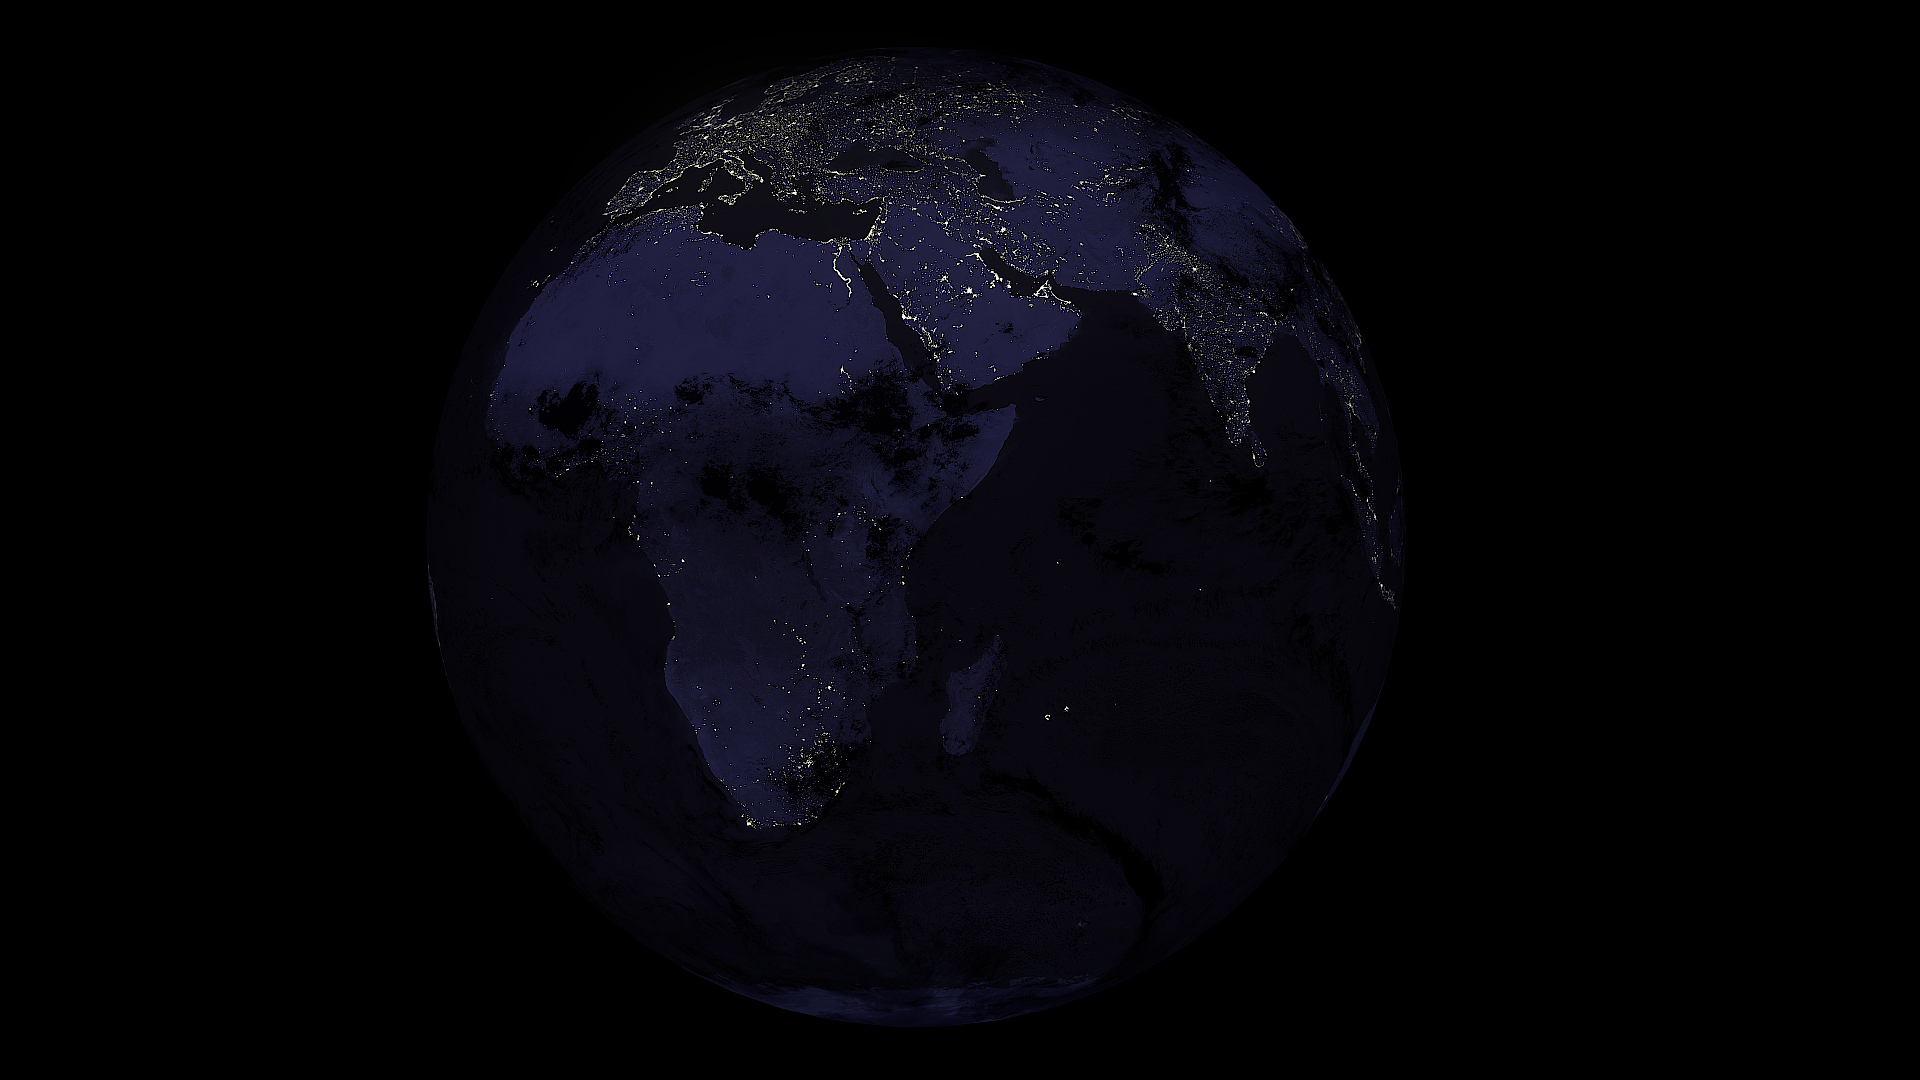 Earth 10k 3d model 3ds fbx blend dae obj 209745